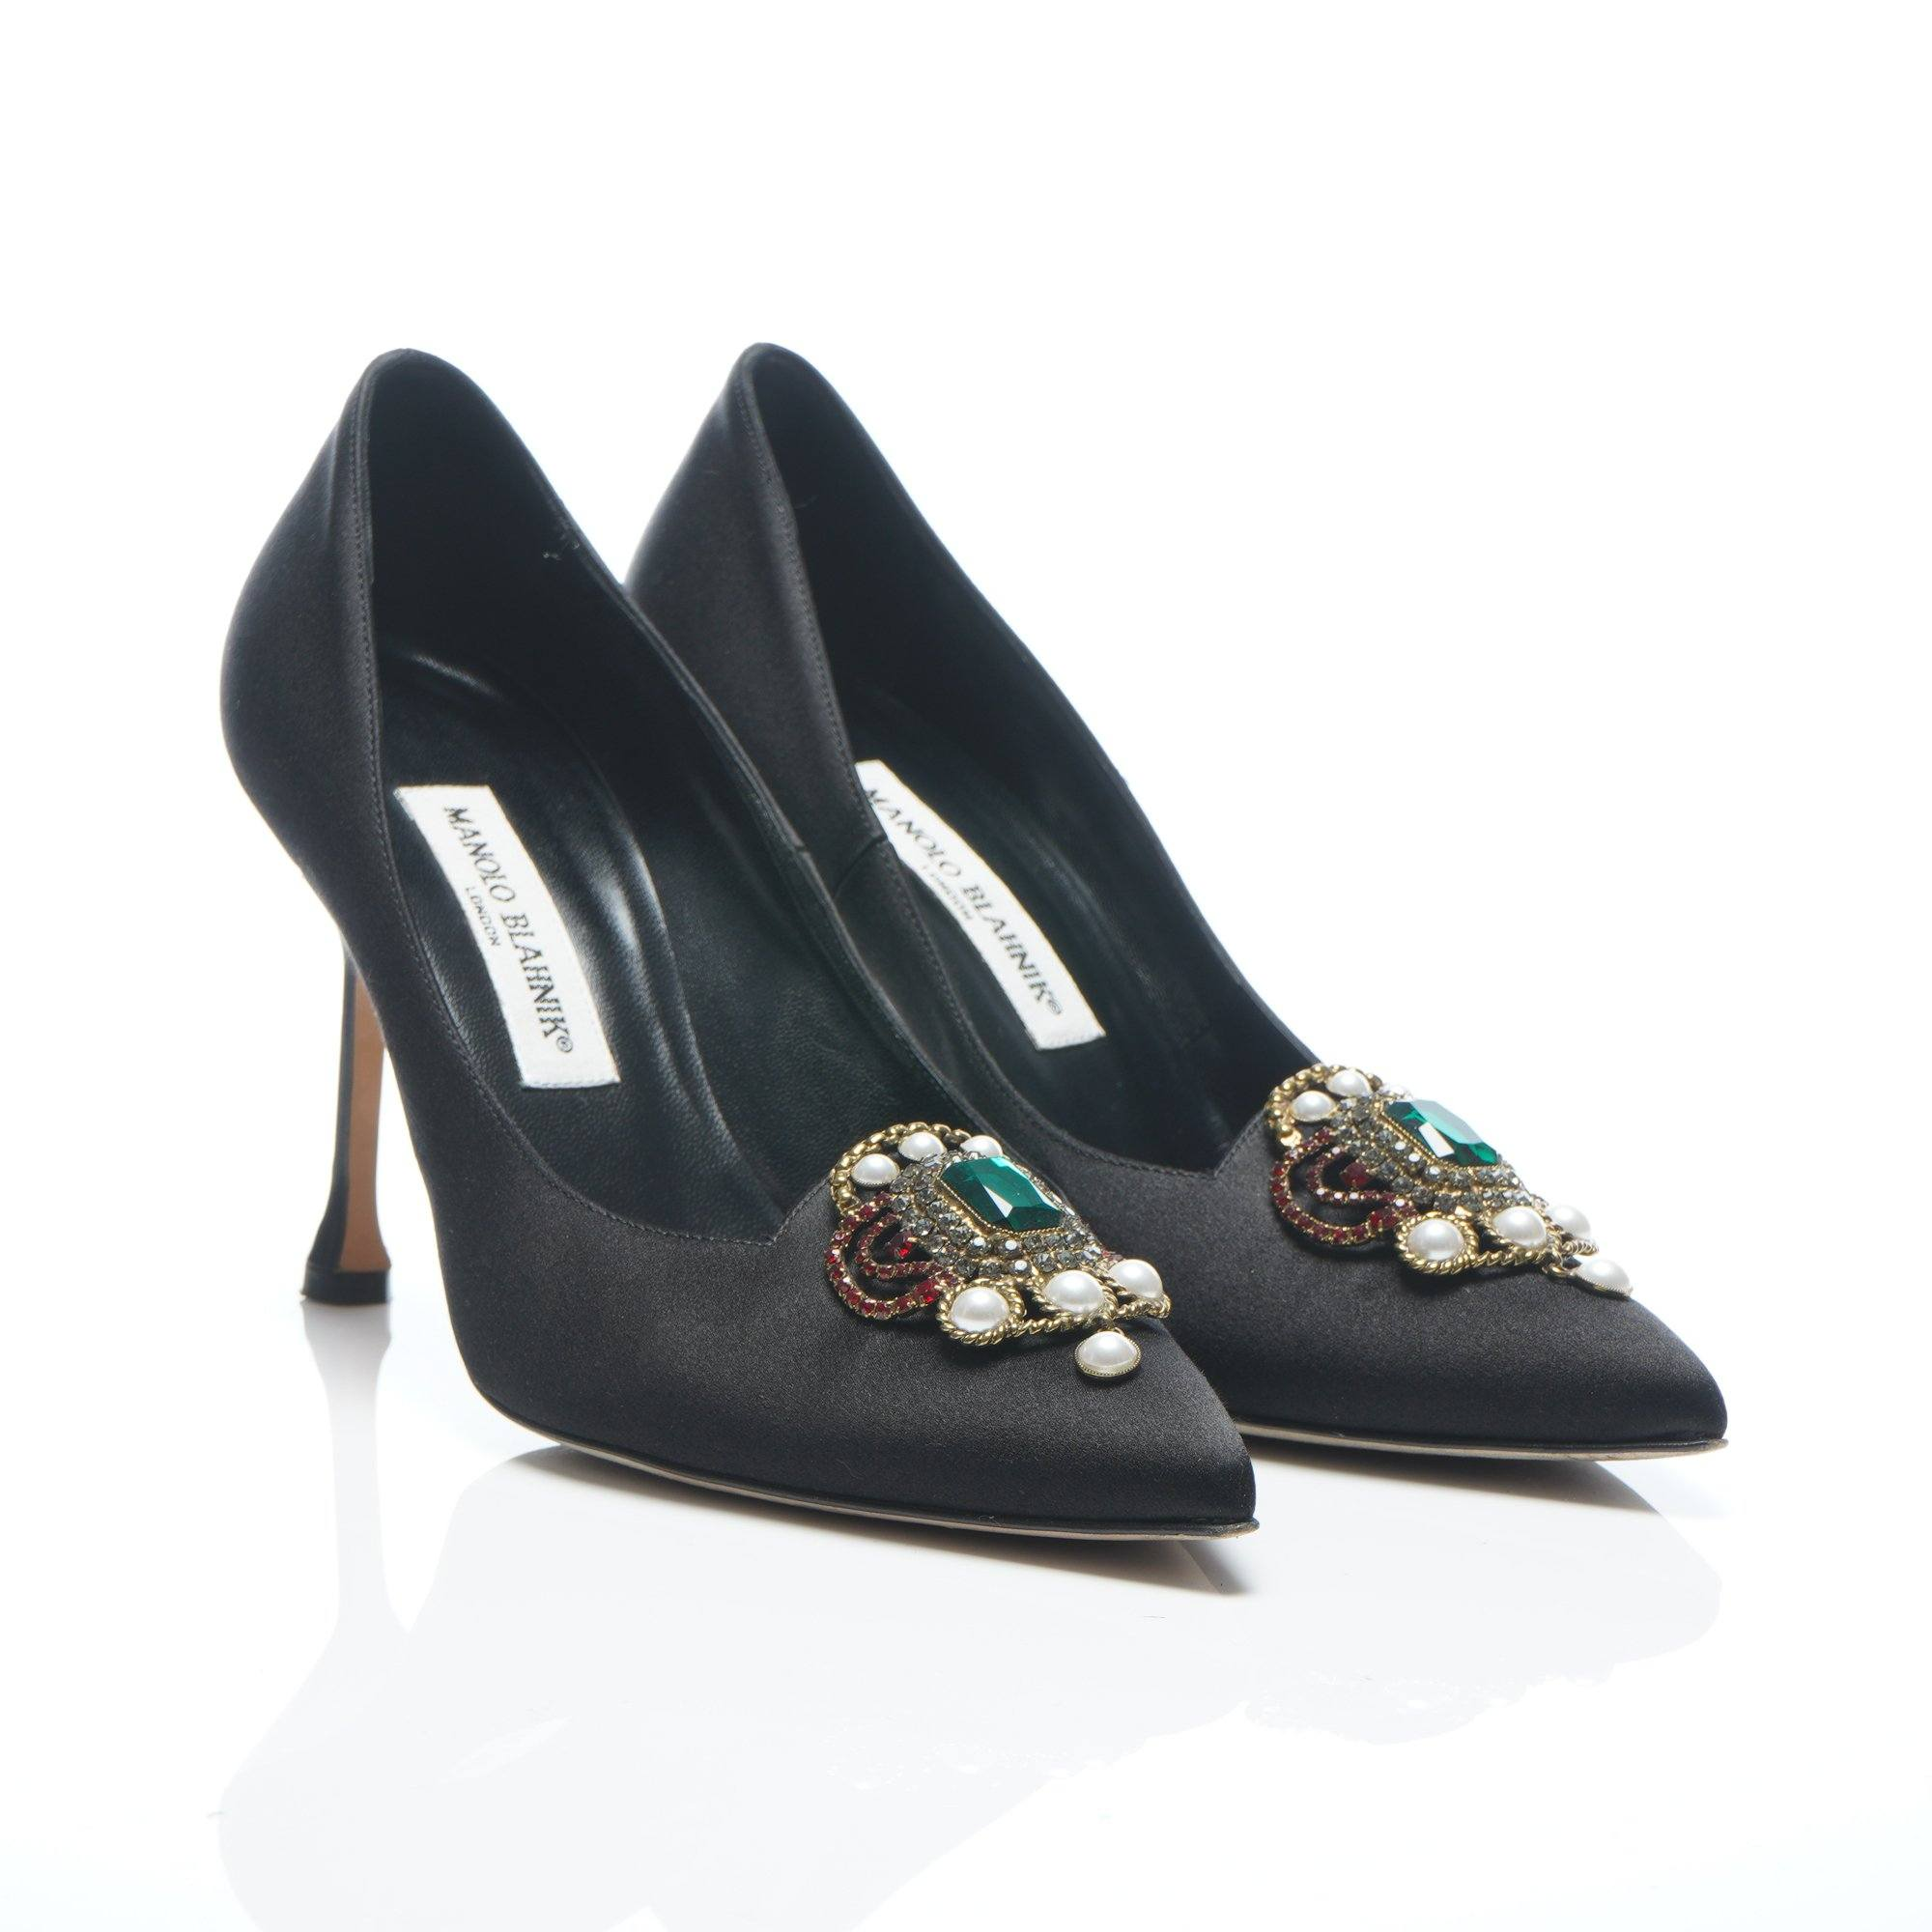 Manolo Blahnik Eufrasia' satin pumps with crystal embellishment